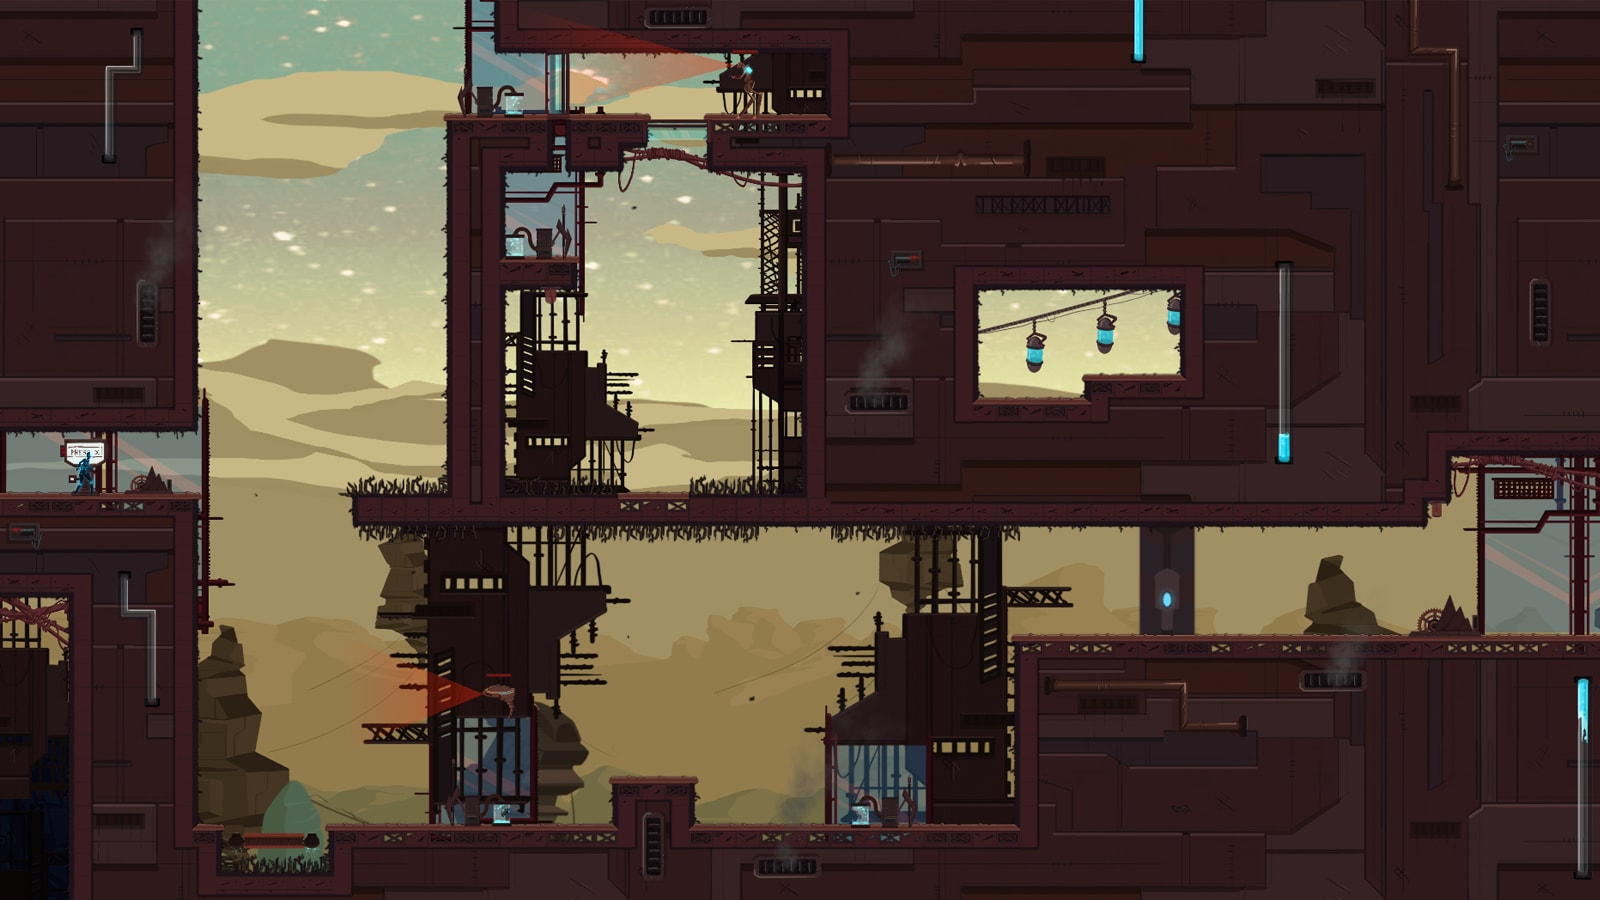 A zoomed-out view of a futuristic industrial level, full of steam vents, pipes and scaffolding.